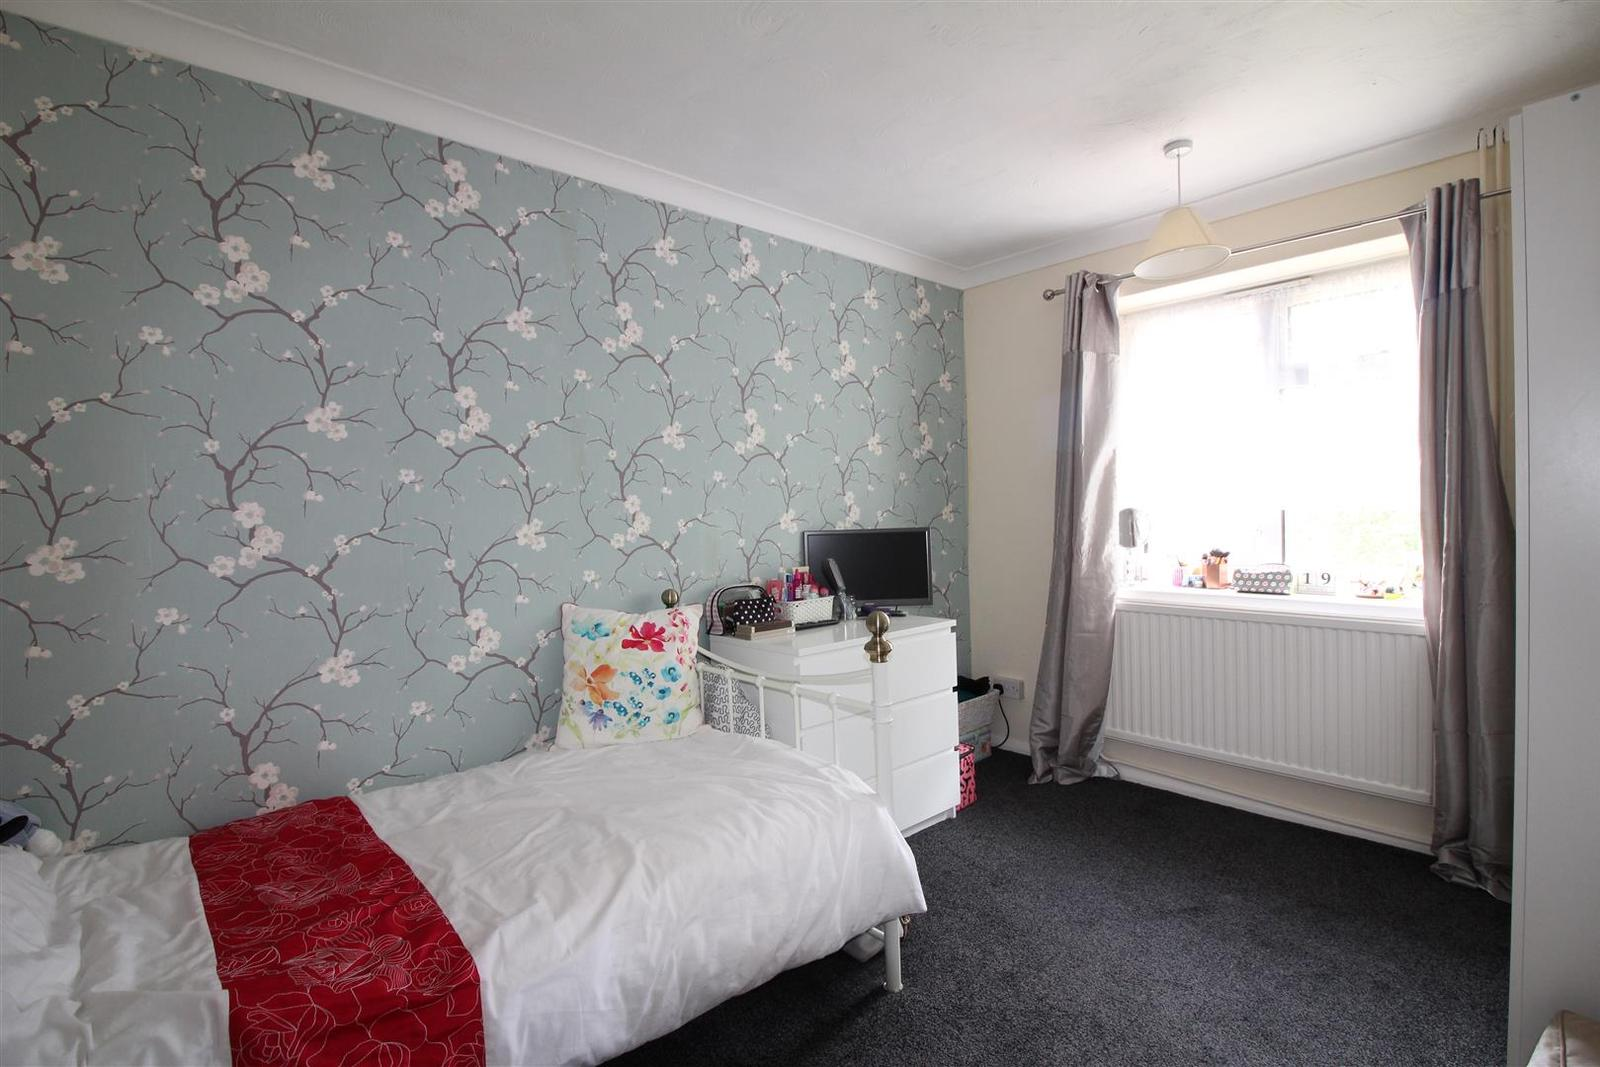 Property For Sale In Harlow